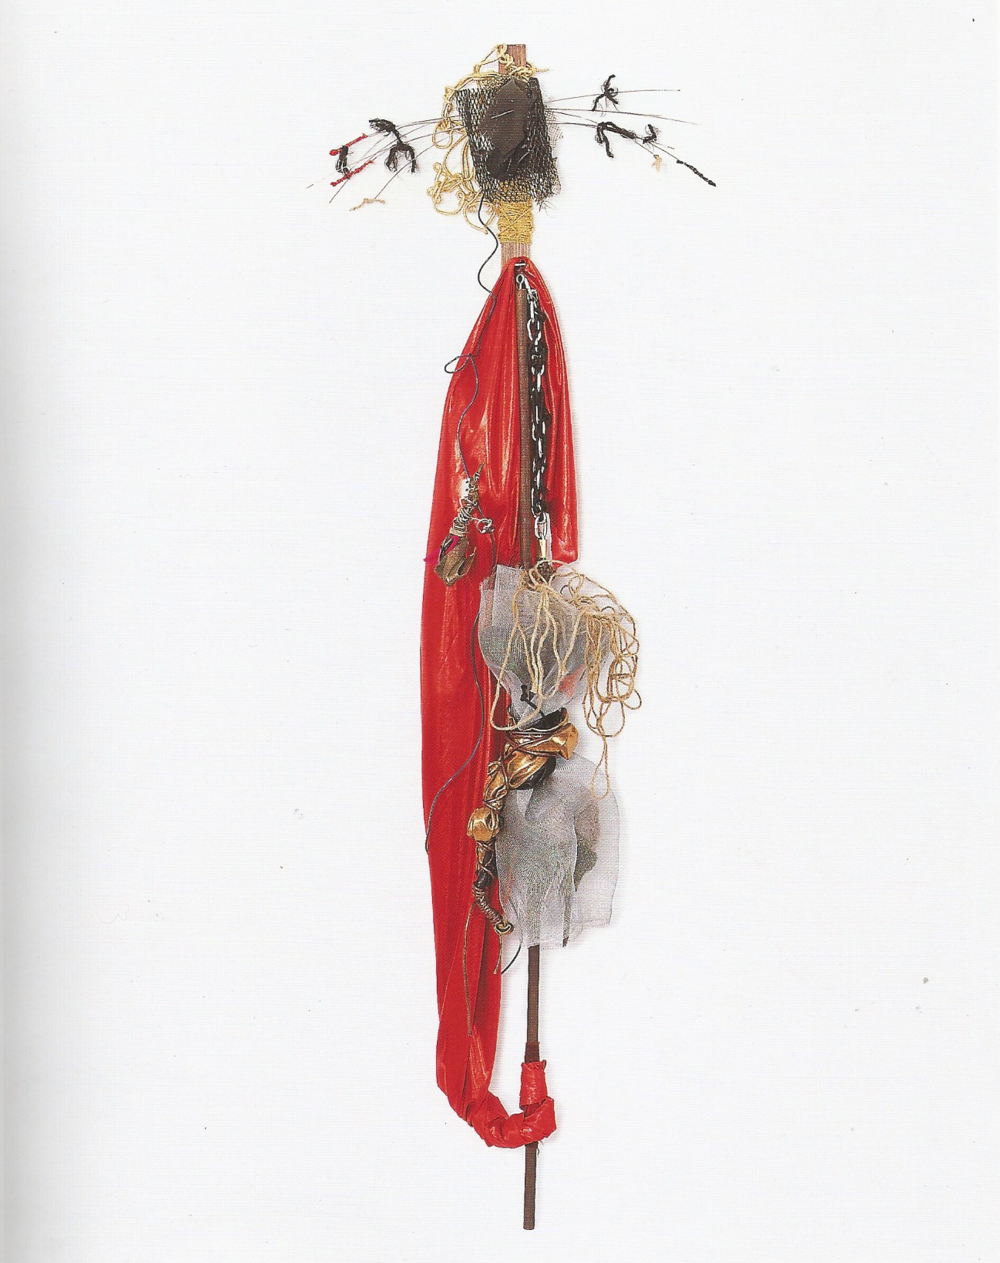 "Re née Lerner: Ruby-robed Woman   ,   Fabric, mesh, hemp, chain, cord, sponge, wires on wood,  66"" x 25""x 8'', 2001"